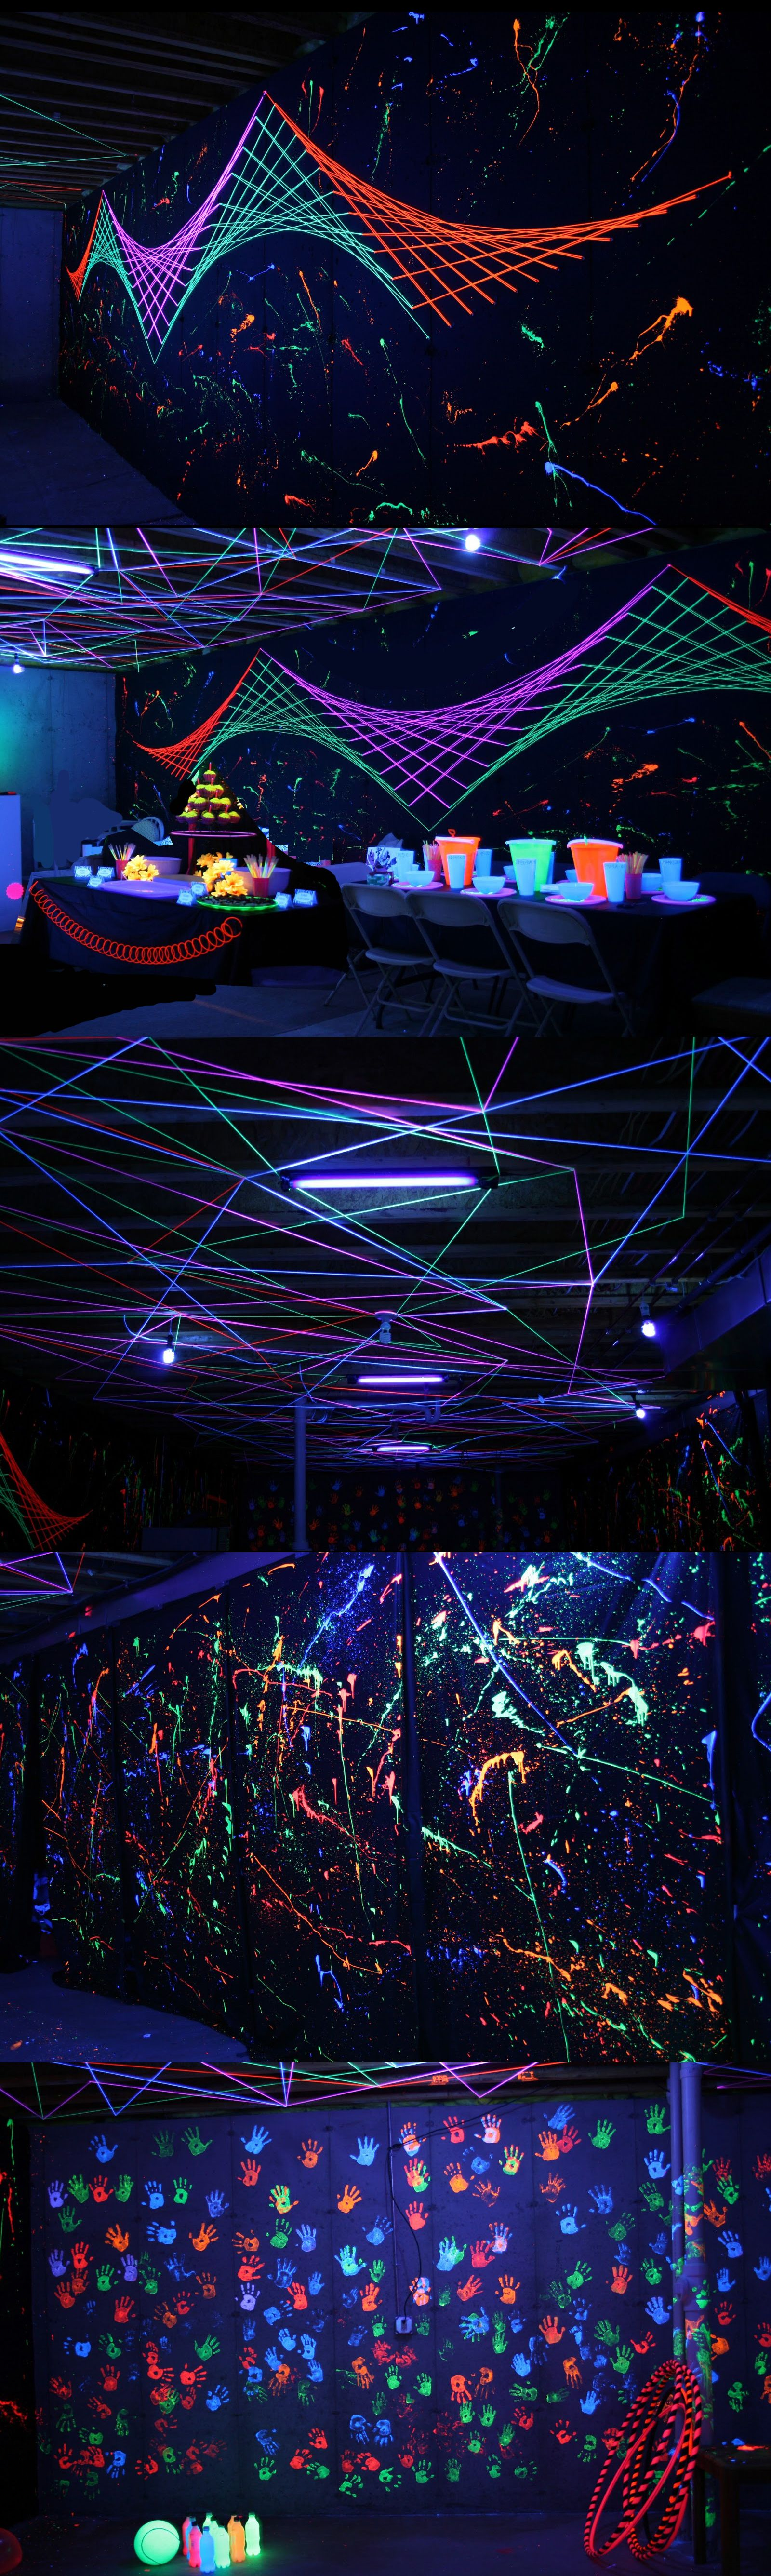 Black Light Party 101 Com Imagens Festa Neon